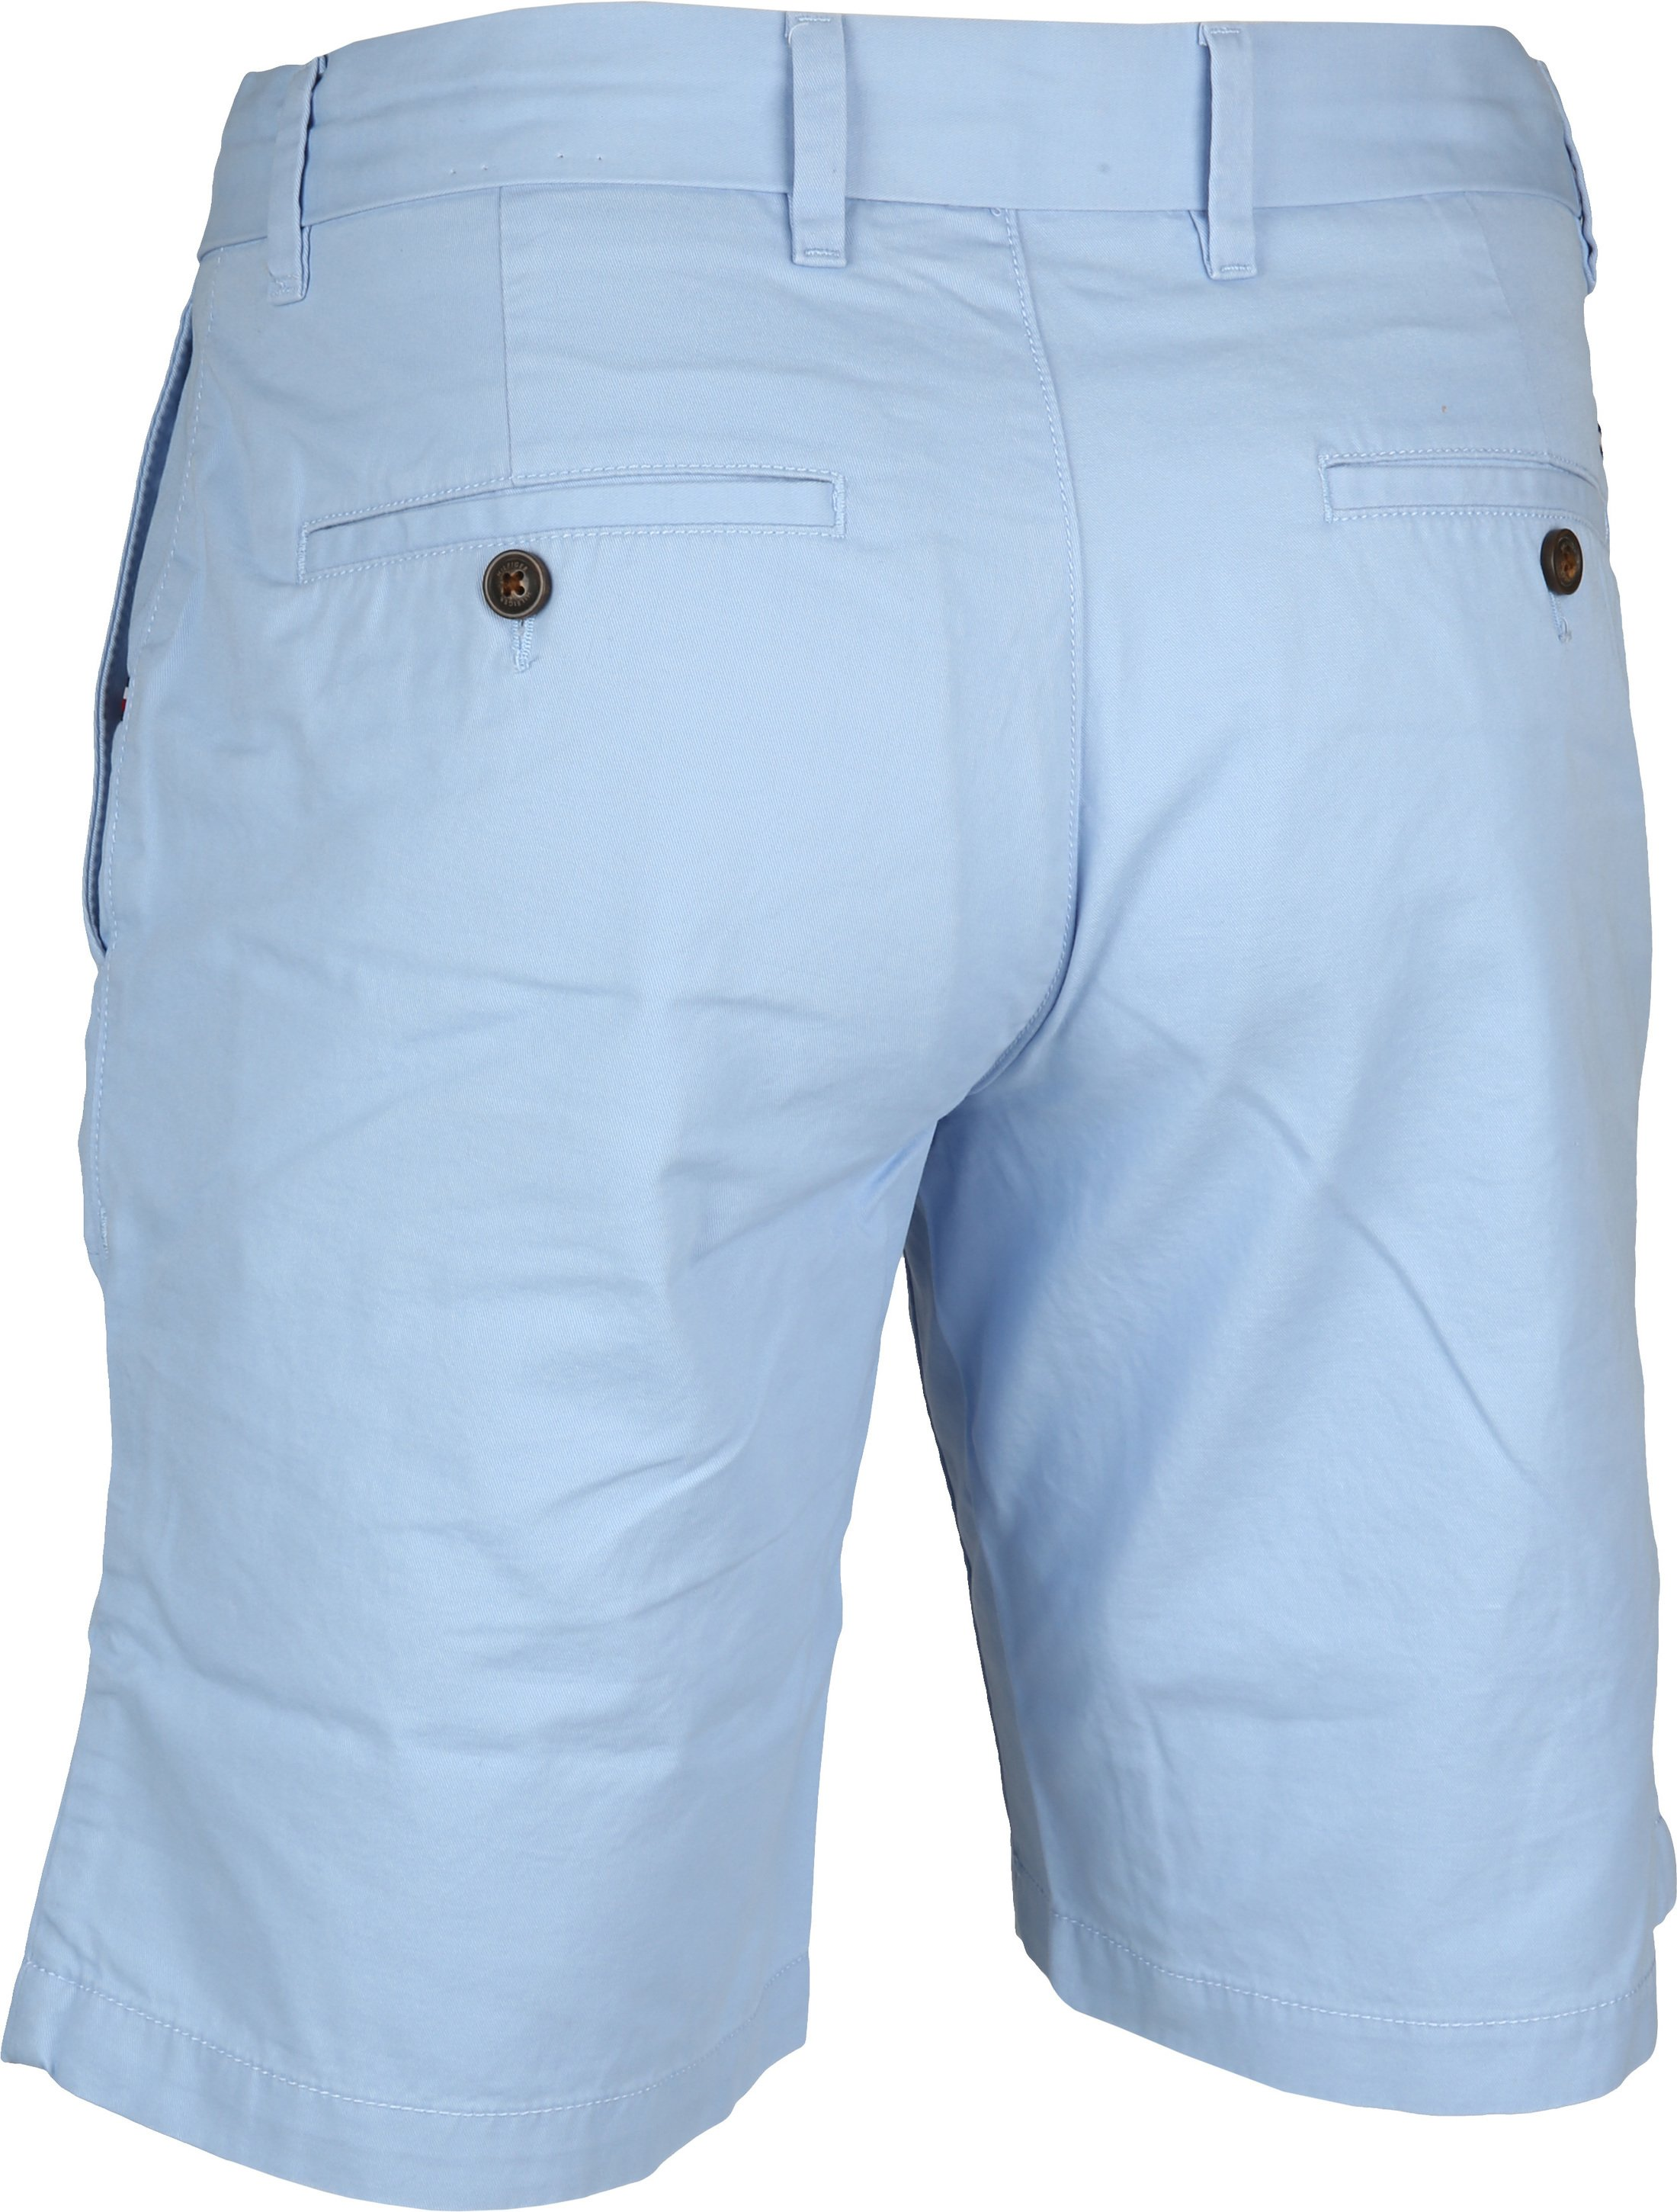 Tommy Hilfiger Short Brooklyn Chambray Blue foto 2